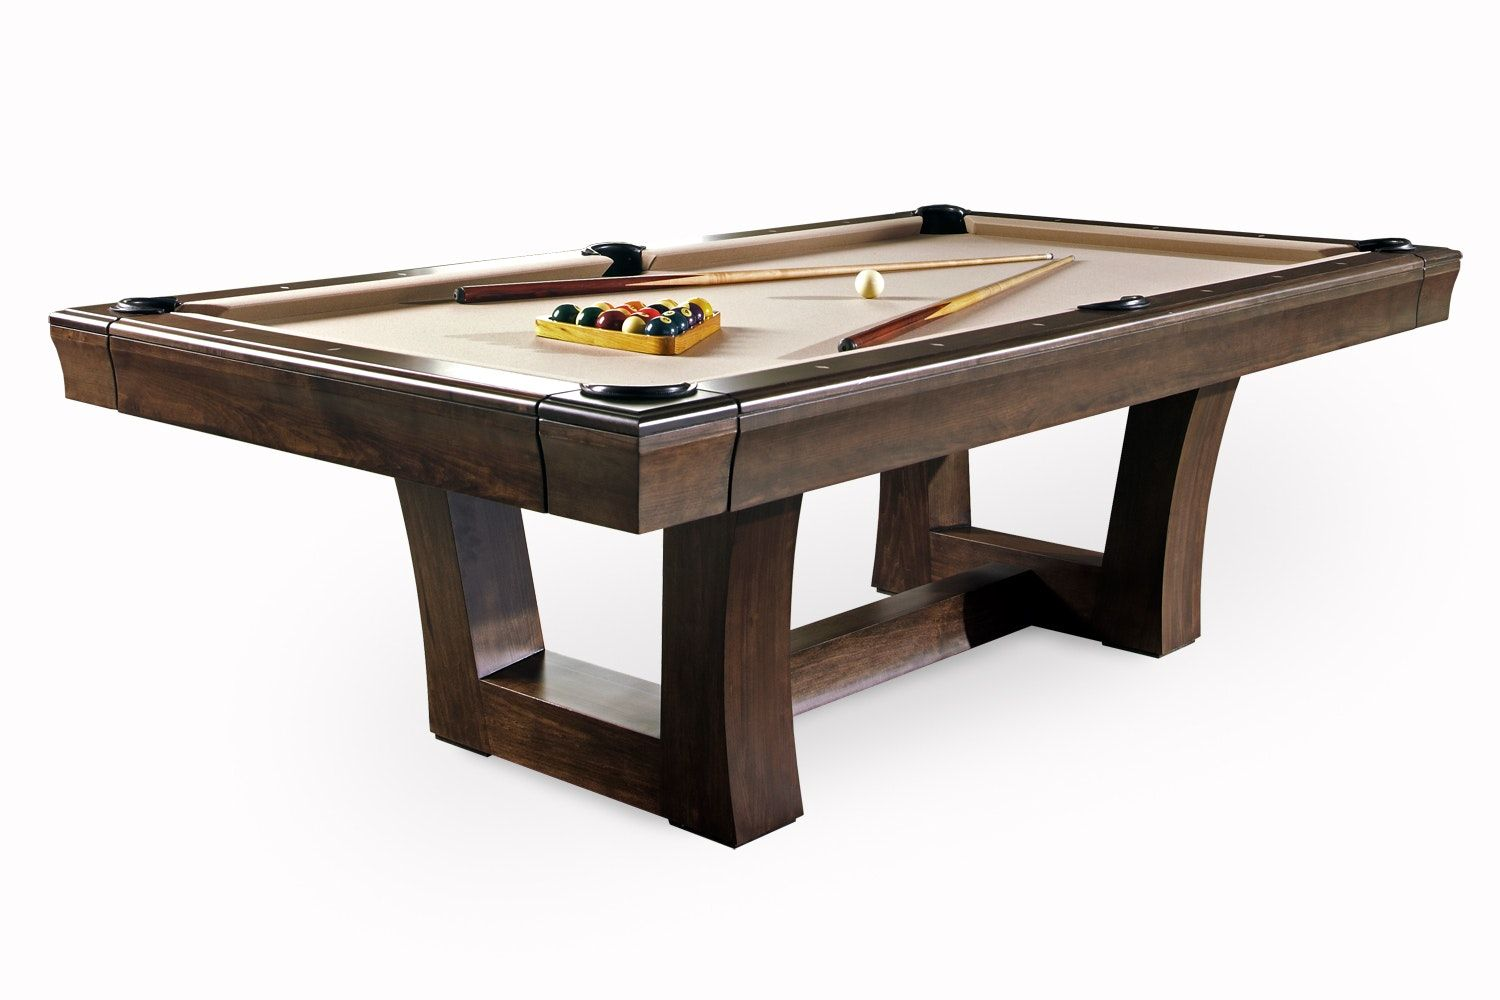 Buy City Pool Table by California House MadetoOrder